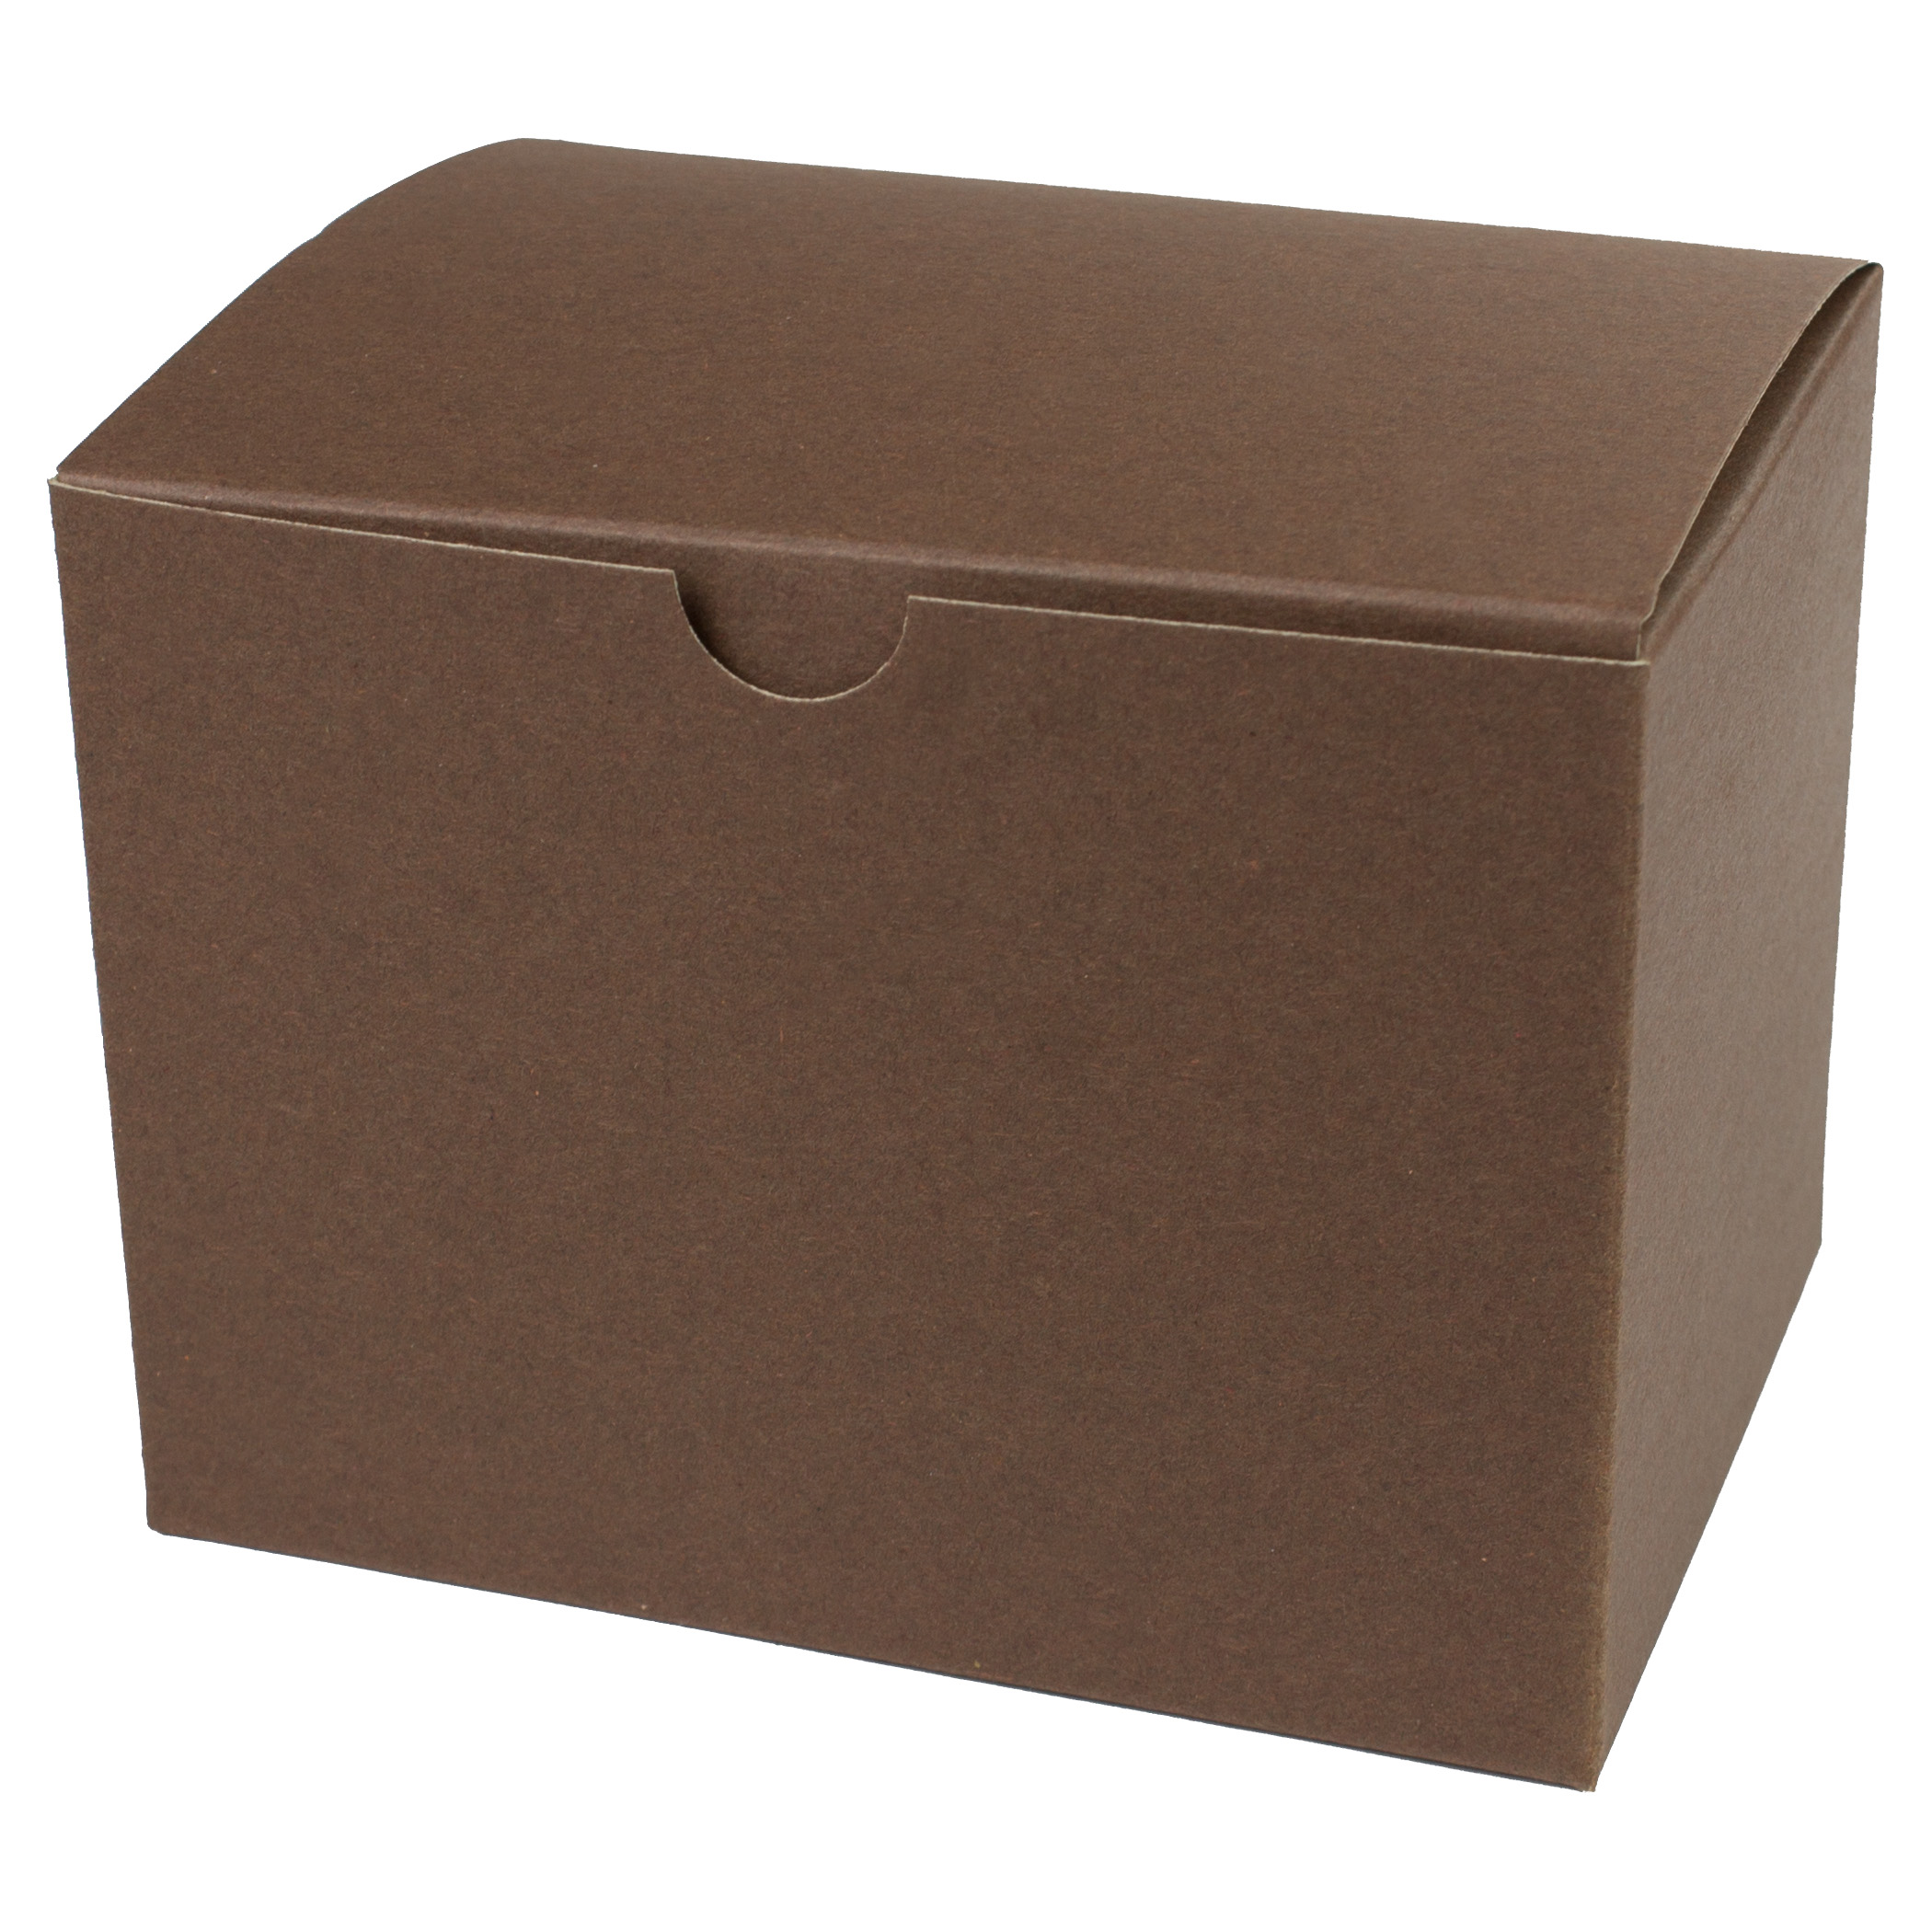 6 x 4.5 x 4.5 COCOA TINTED TUCK-TOP GIFT BOXES